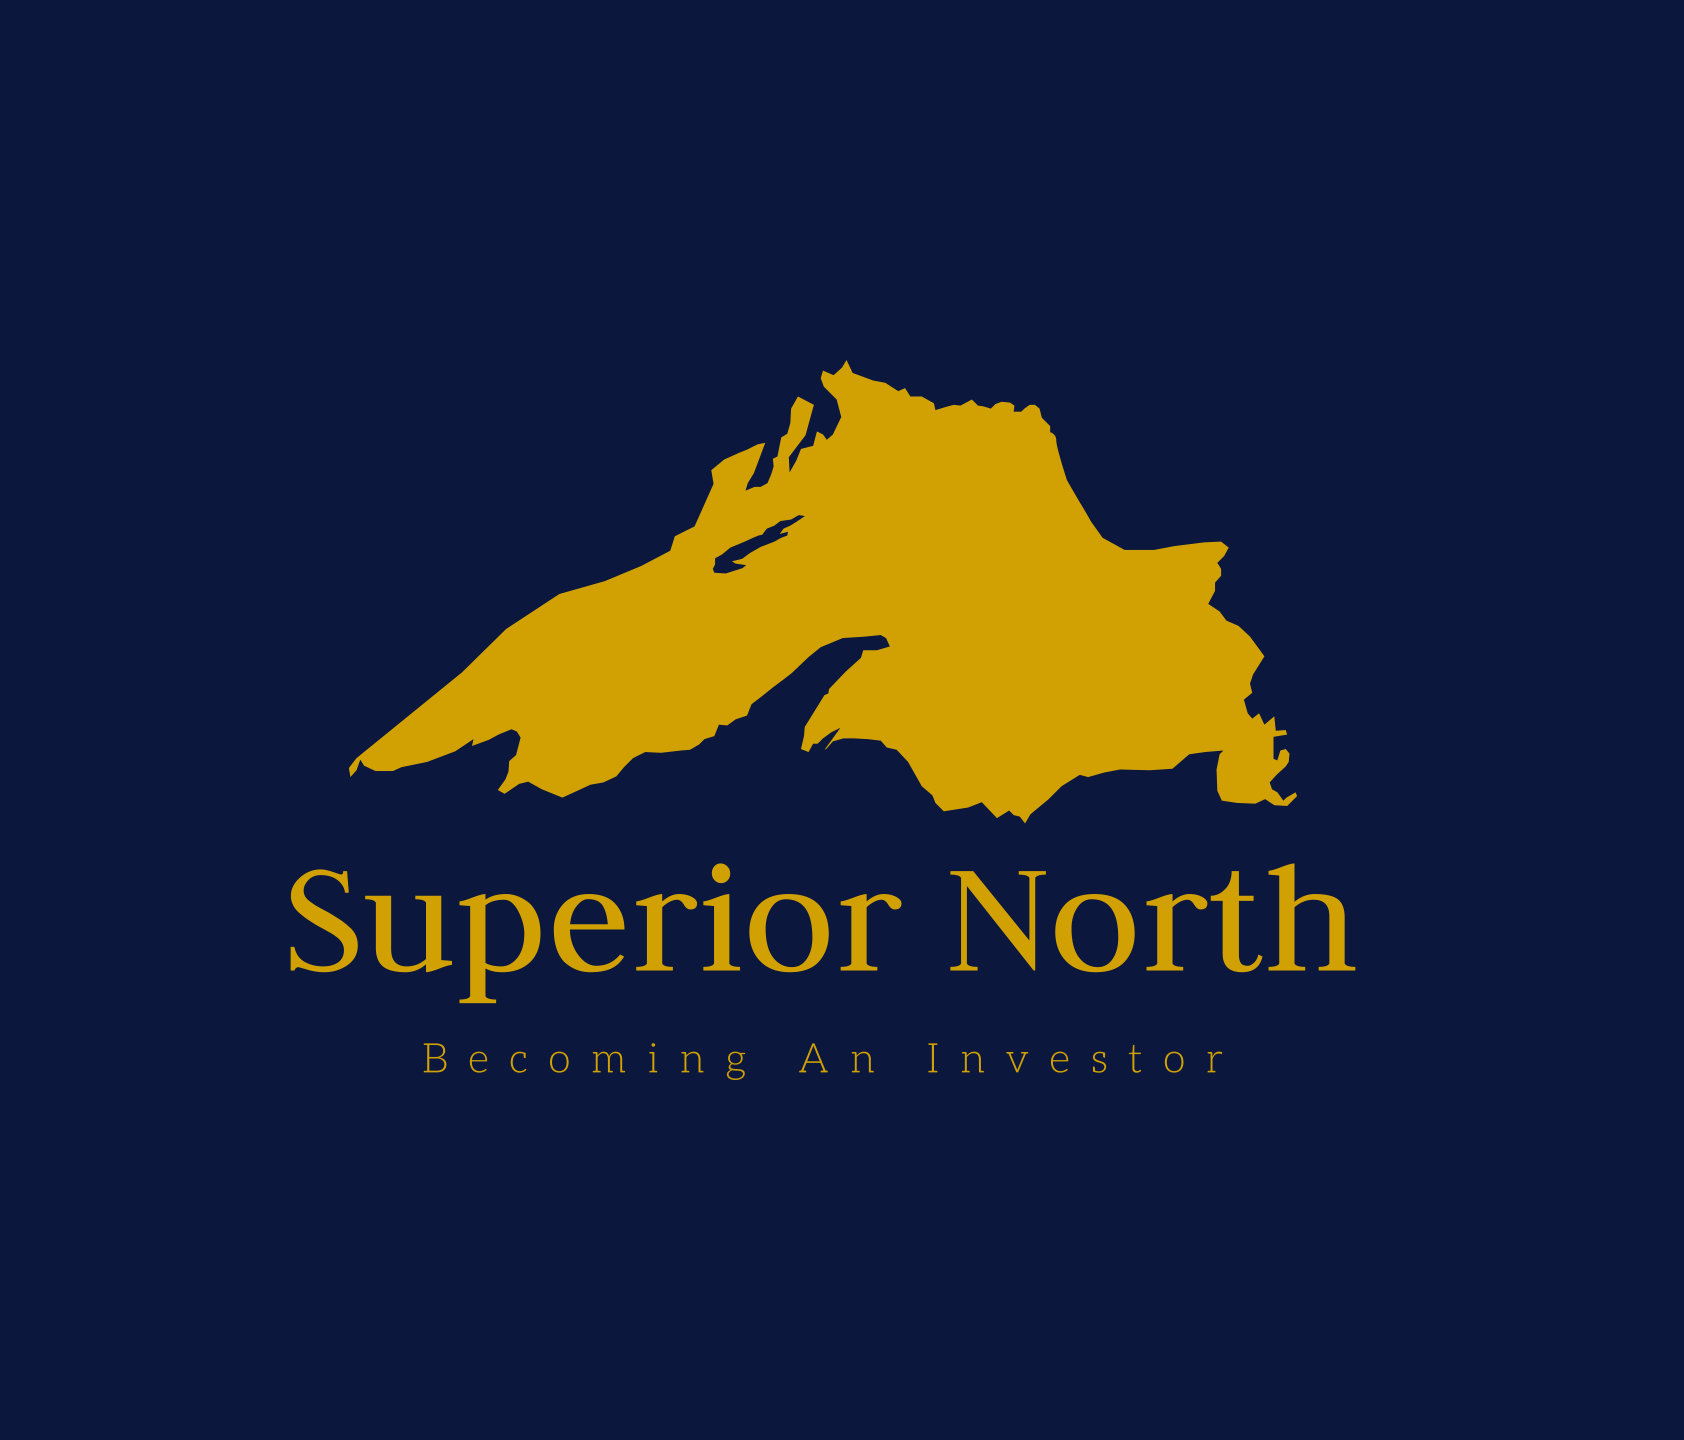 Superior North LLC